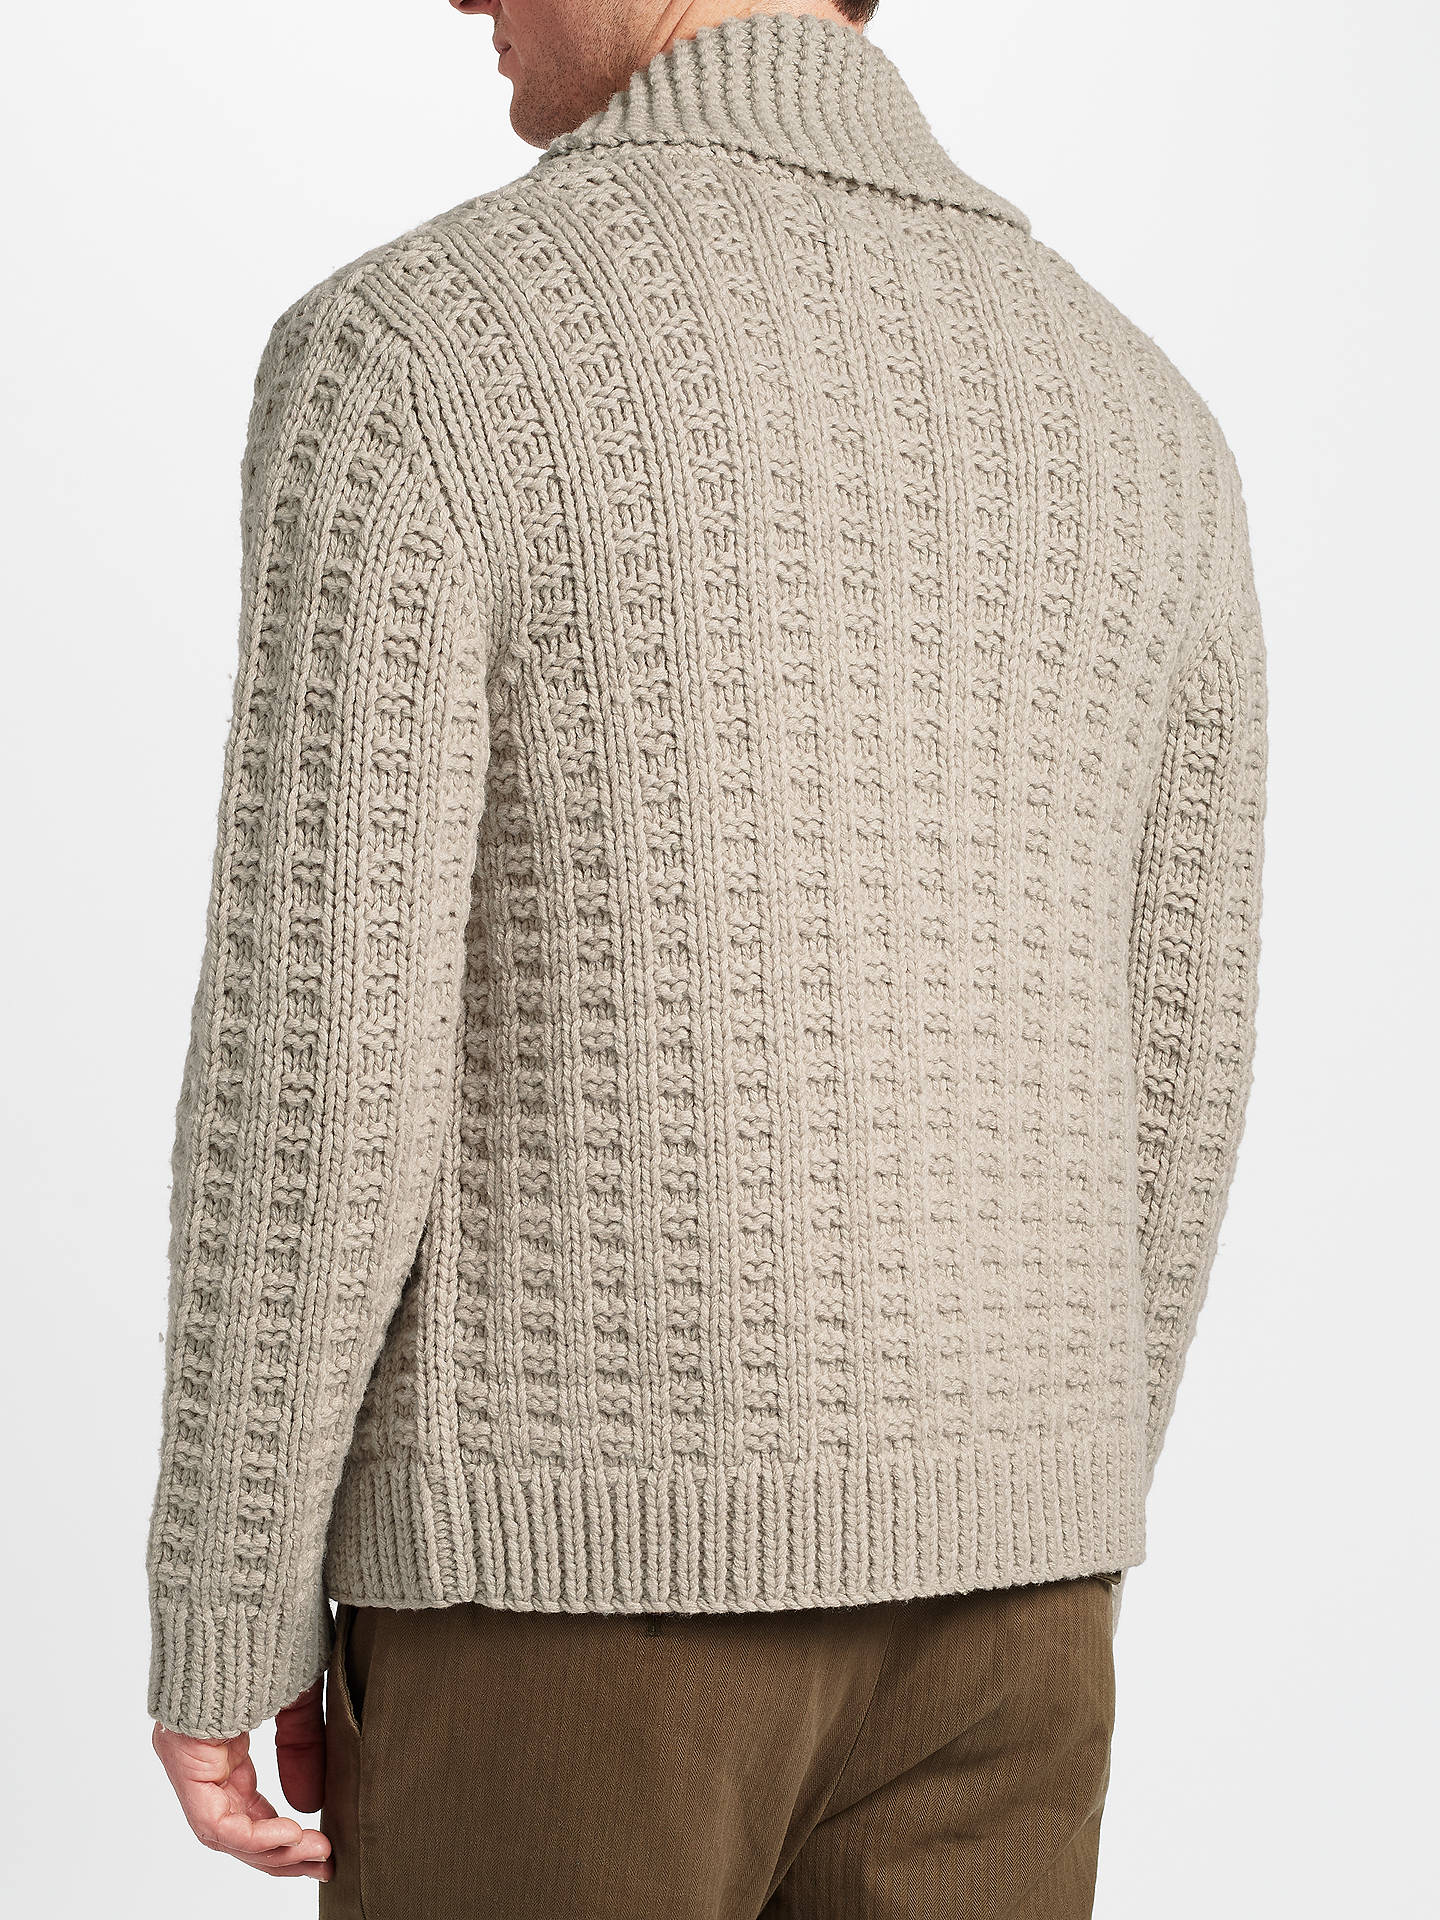 JOHN LEWIS & Co. Hand Knit Cardigan, Grey at John Lewis